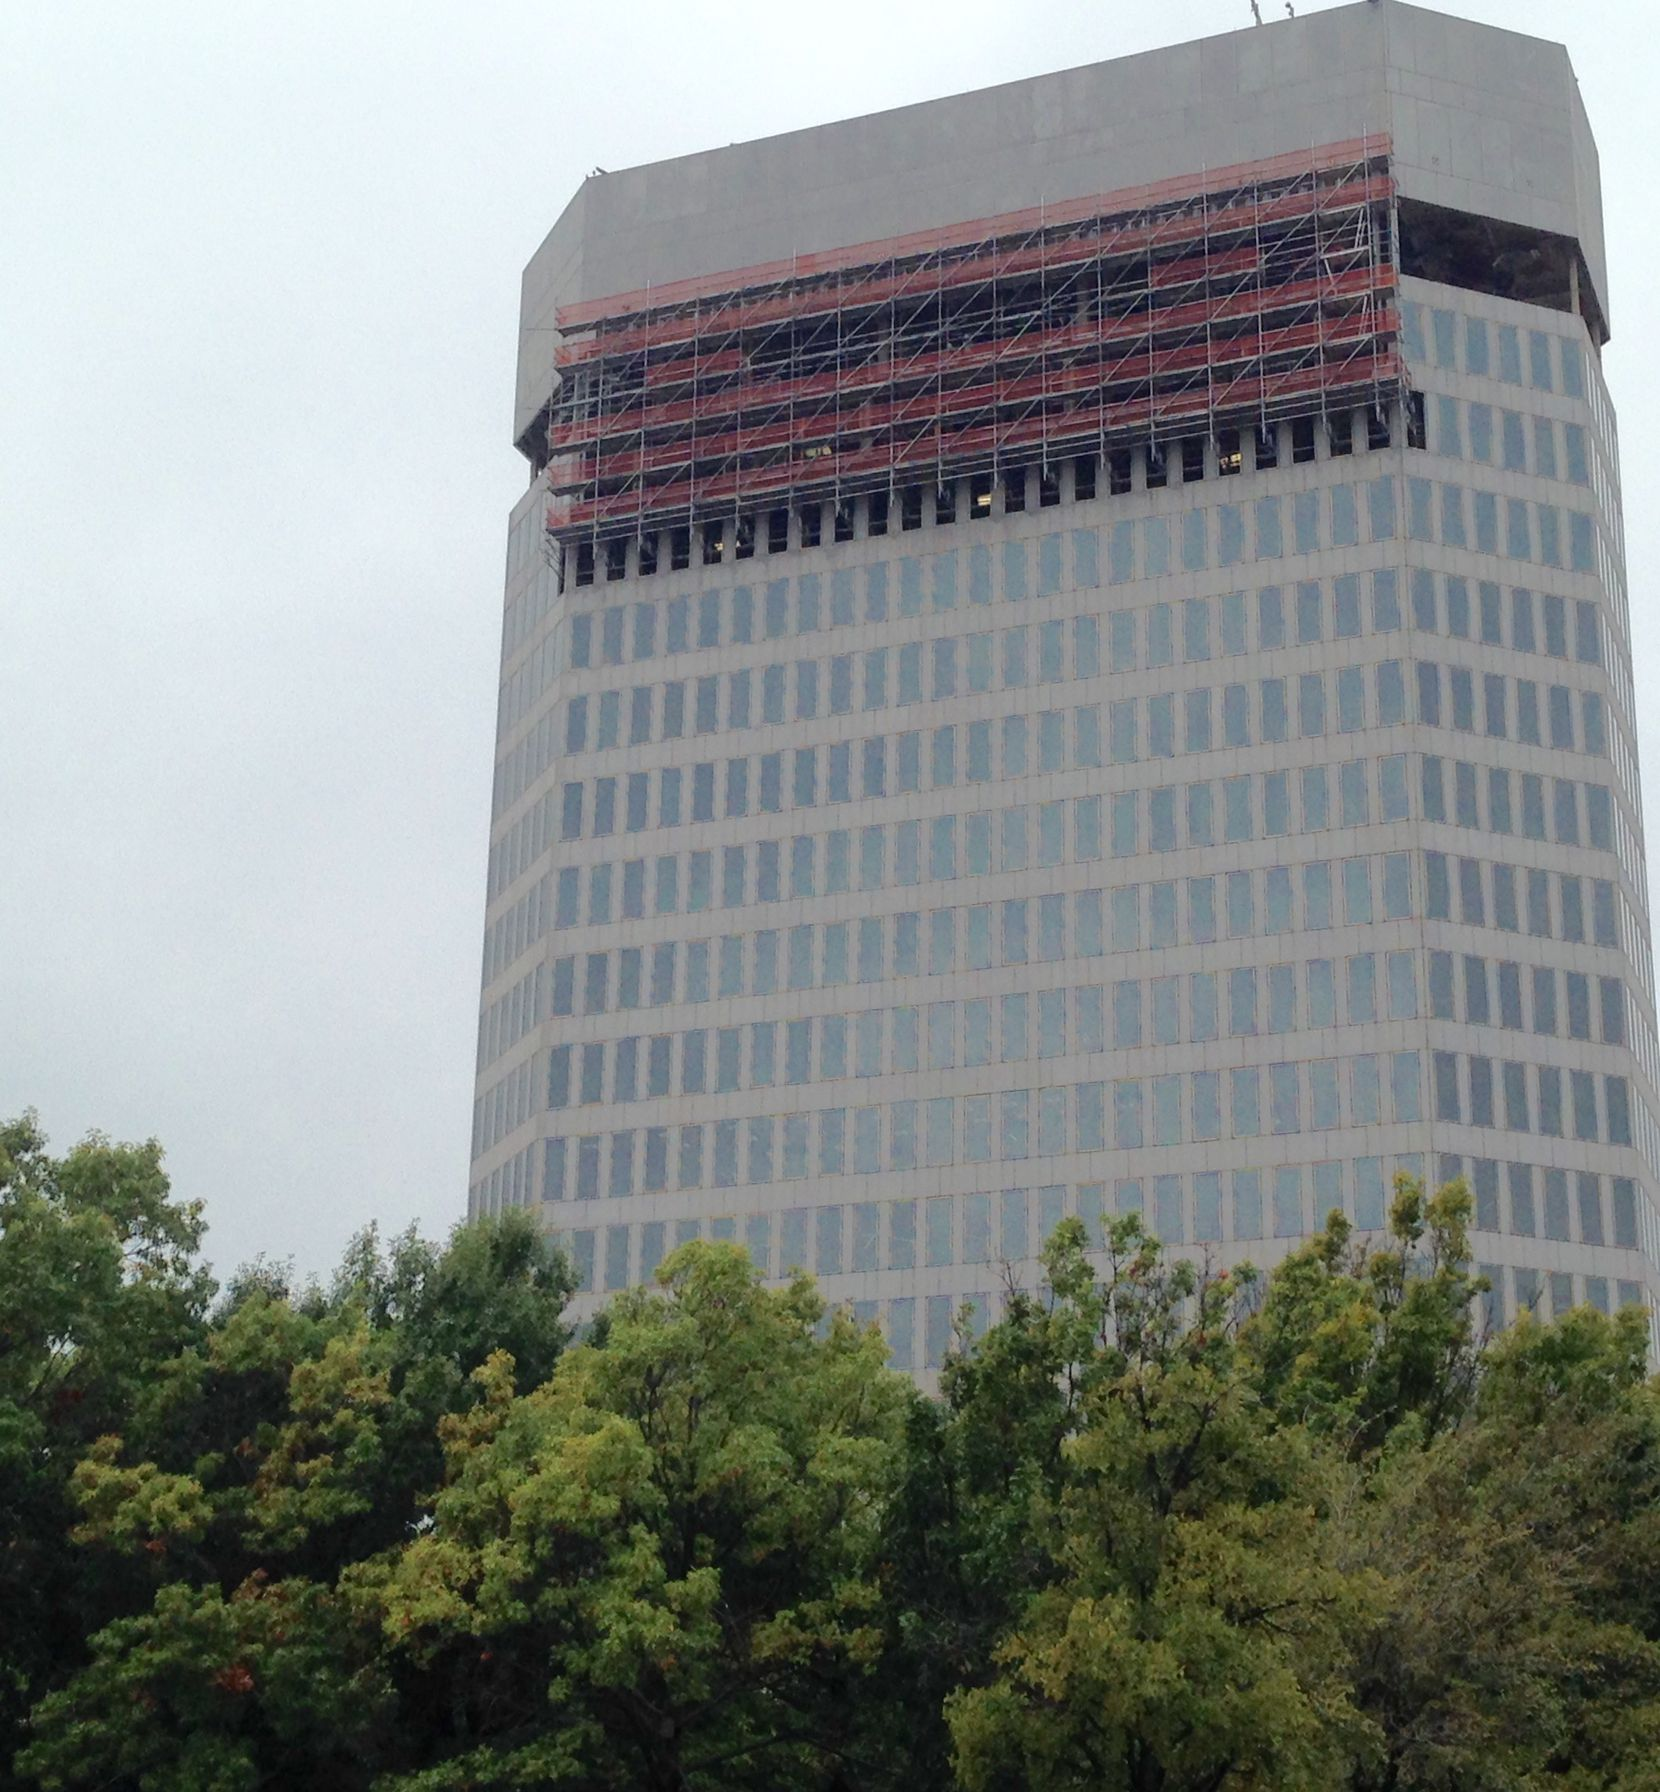 Work crews are still removing the exterior on the upper floors of the 400 Record building downtown.